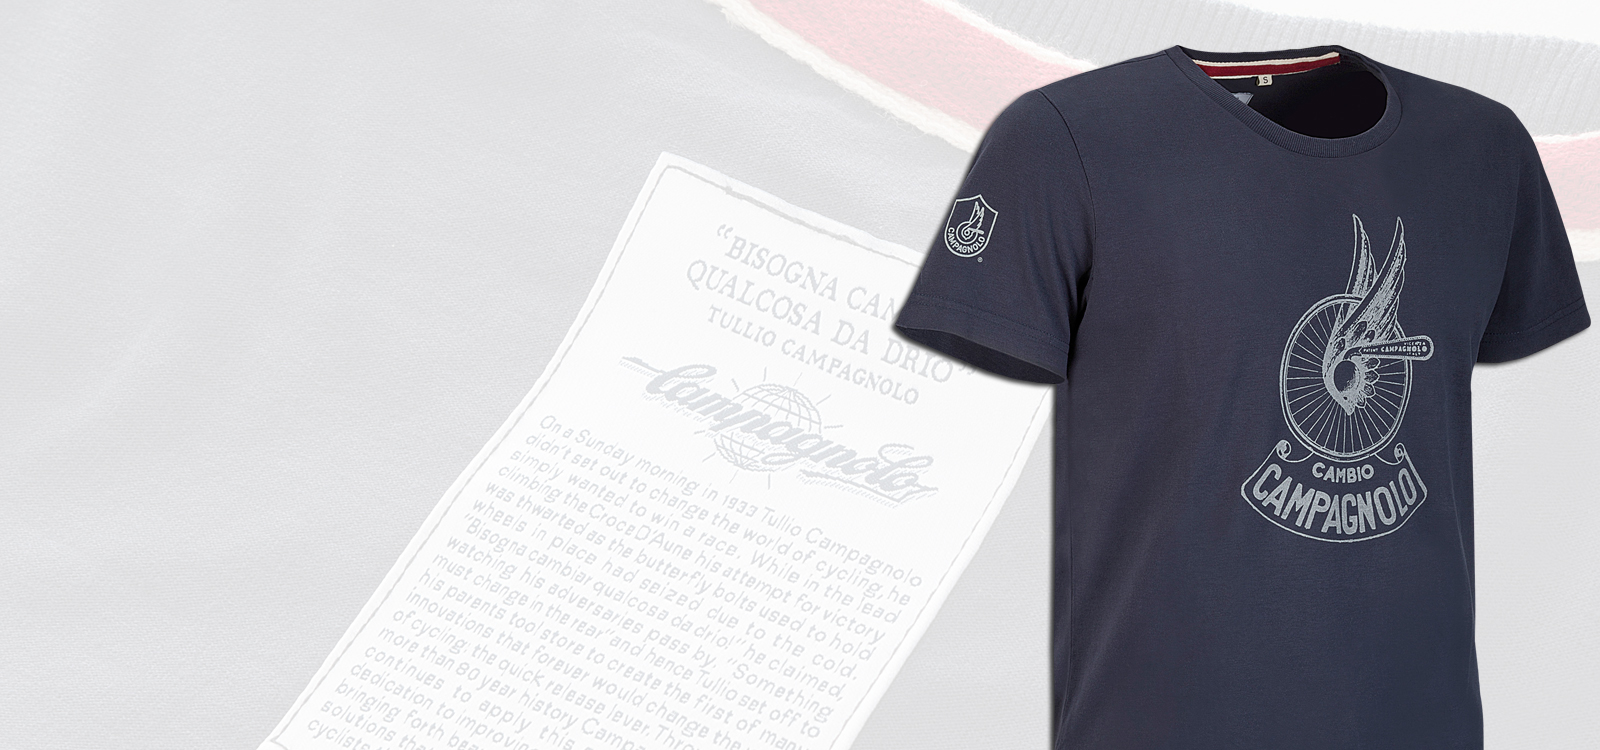 The Campagnolo Classic T-shirt